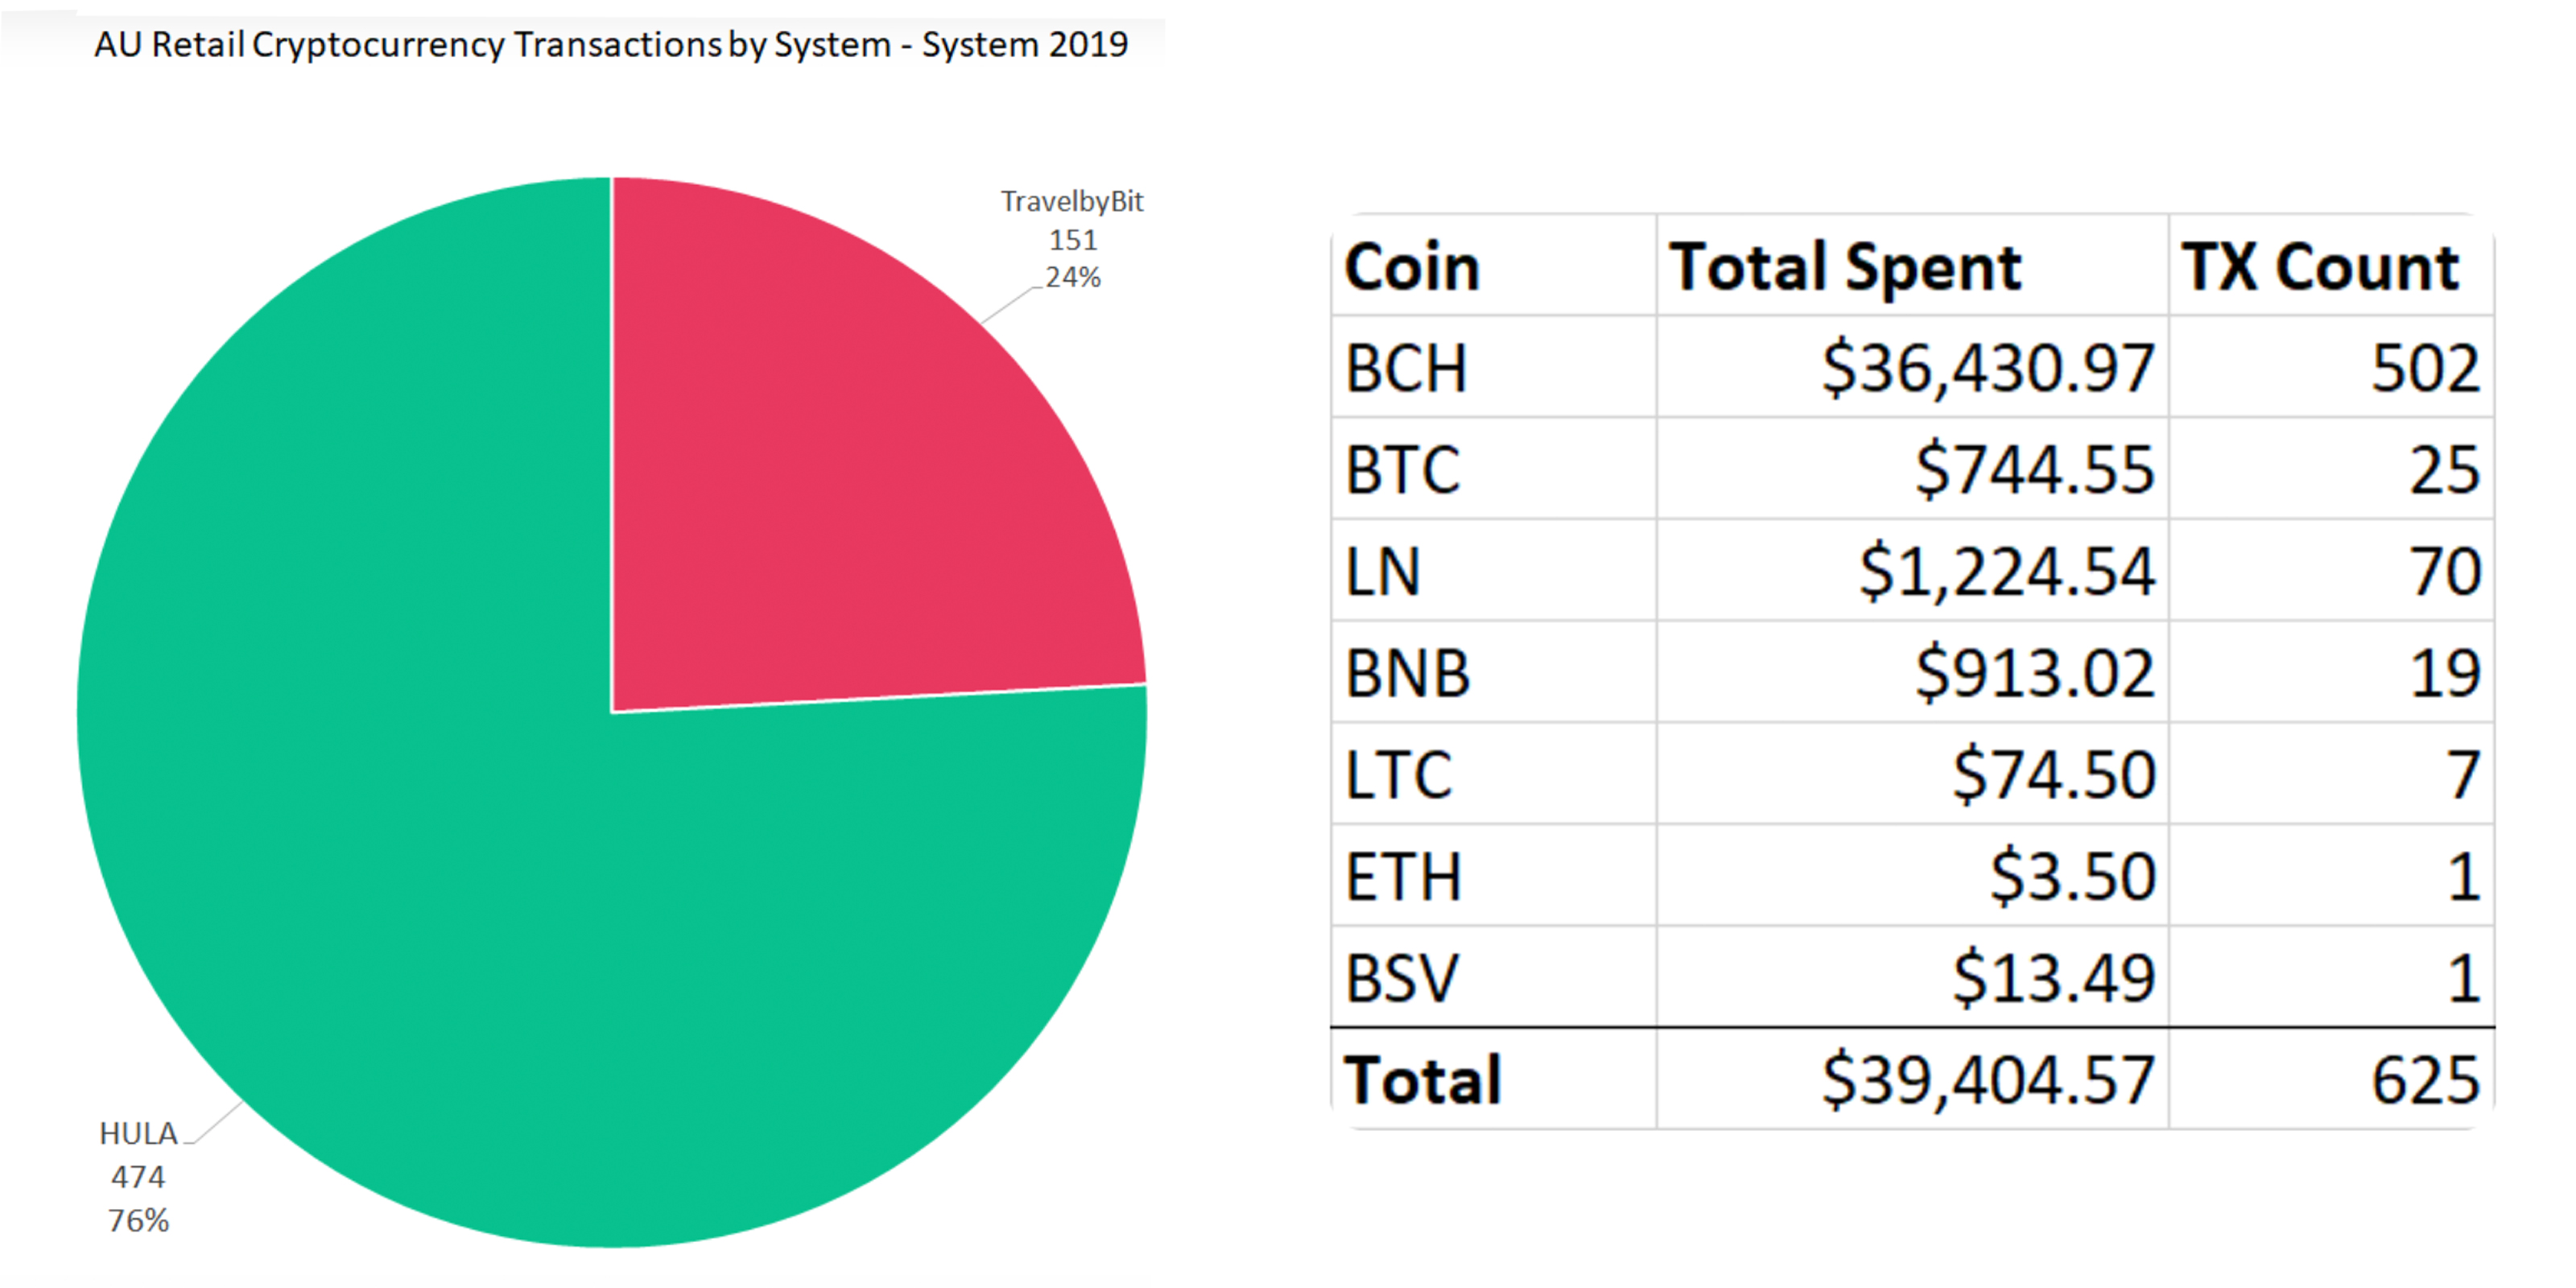 Bitcoin Cash Outshines BTC Retail Spending in Australia by a Wide Margin